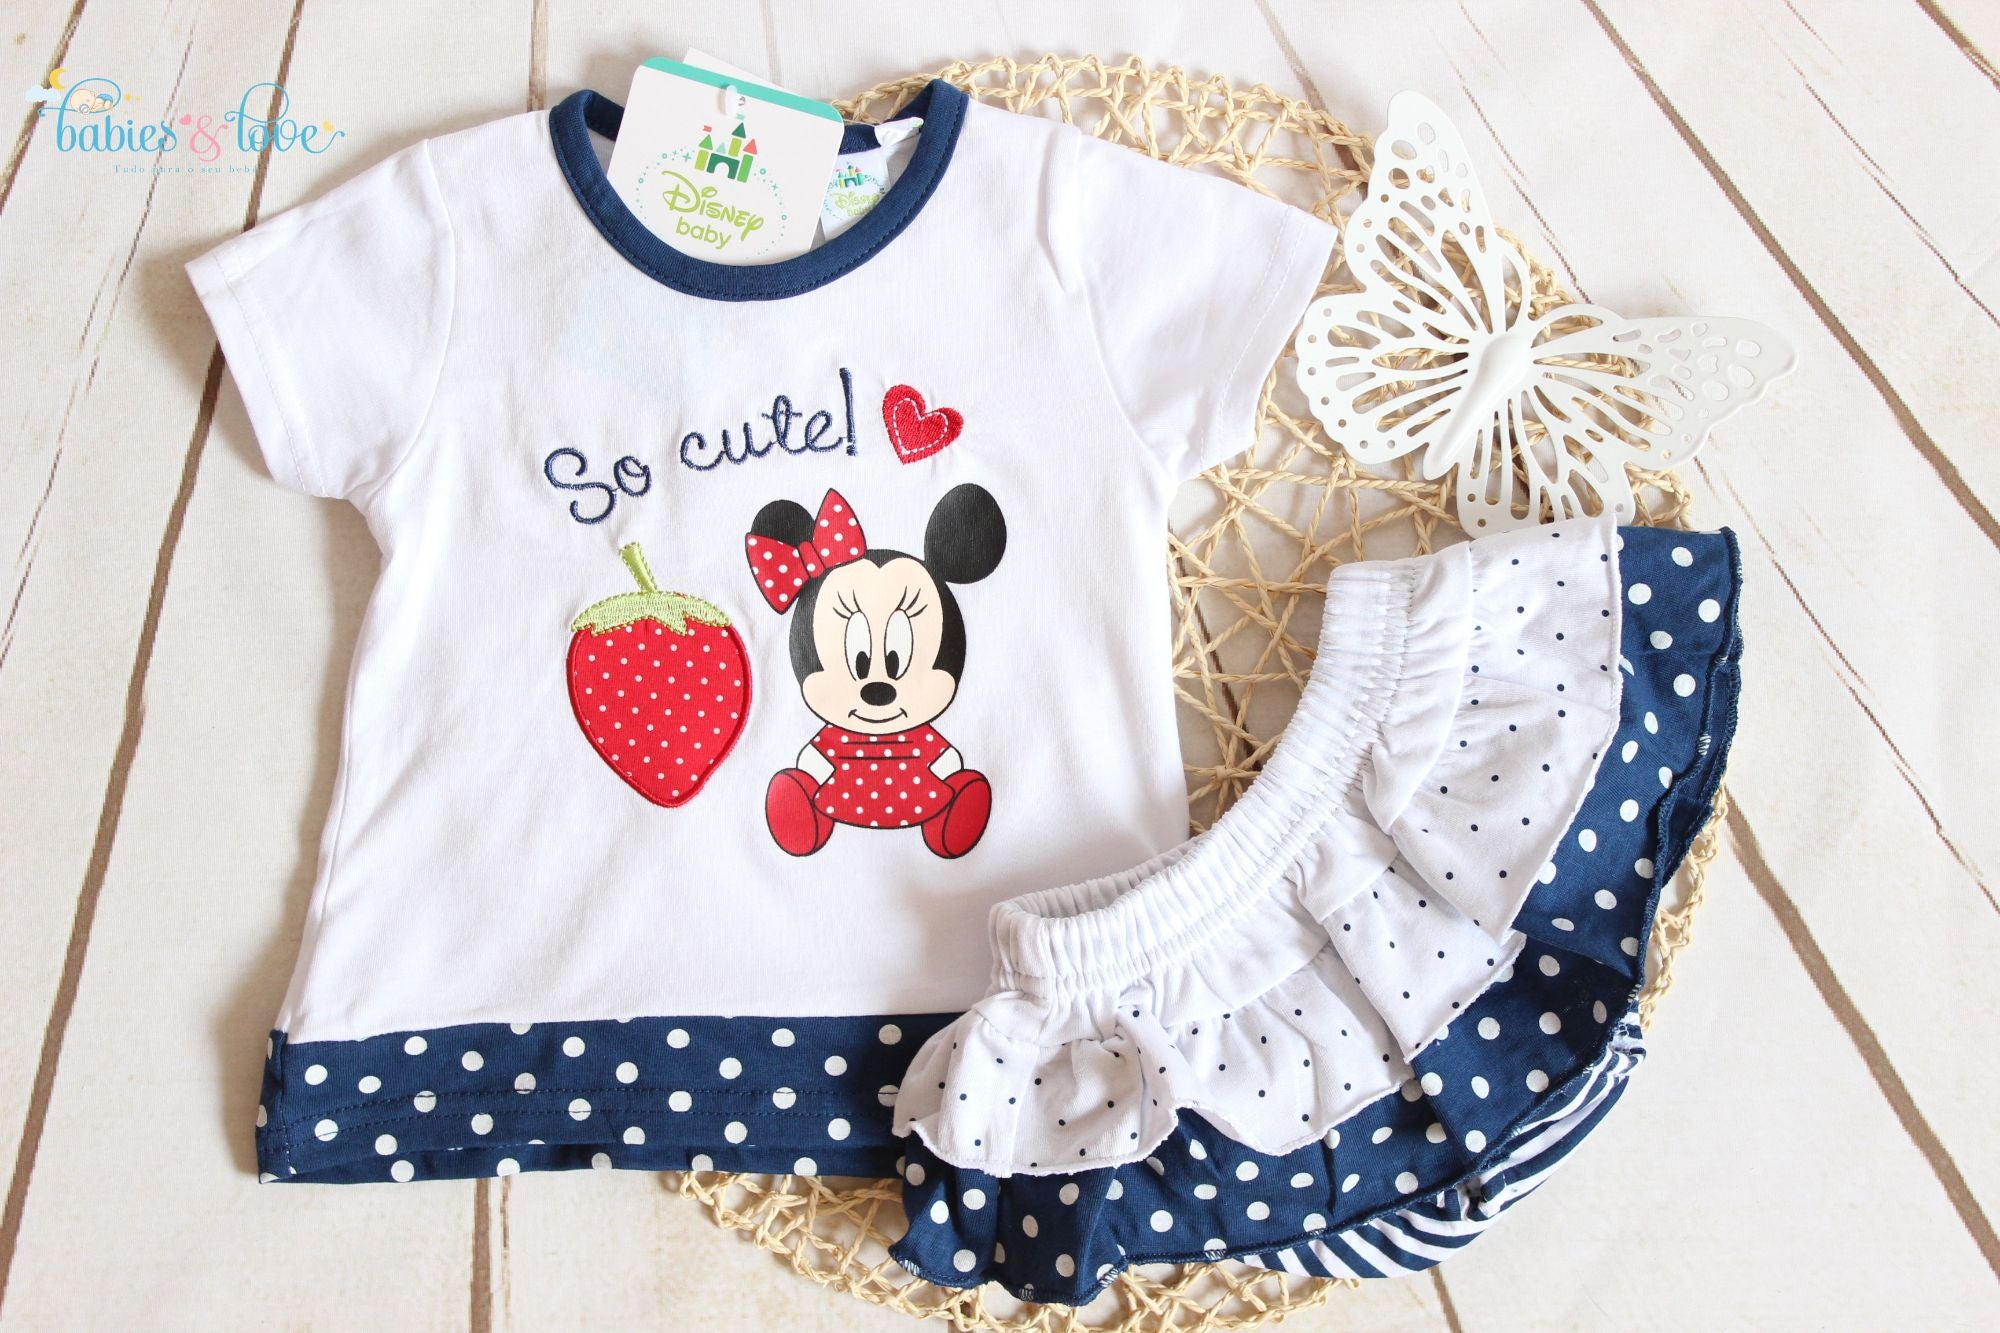 Conjunto Disney Minnie 24 meses